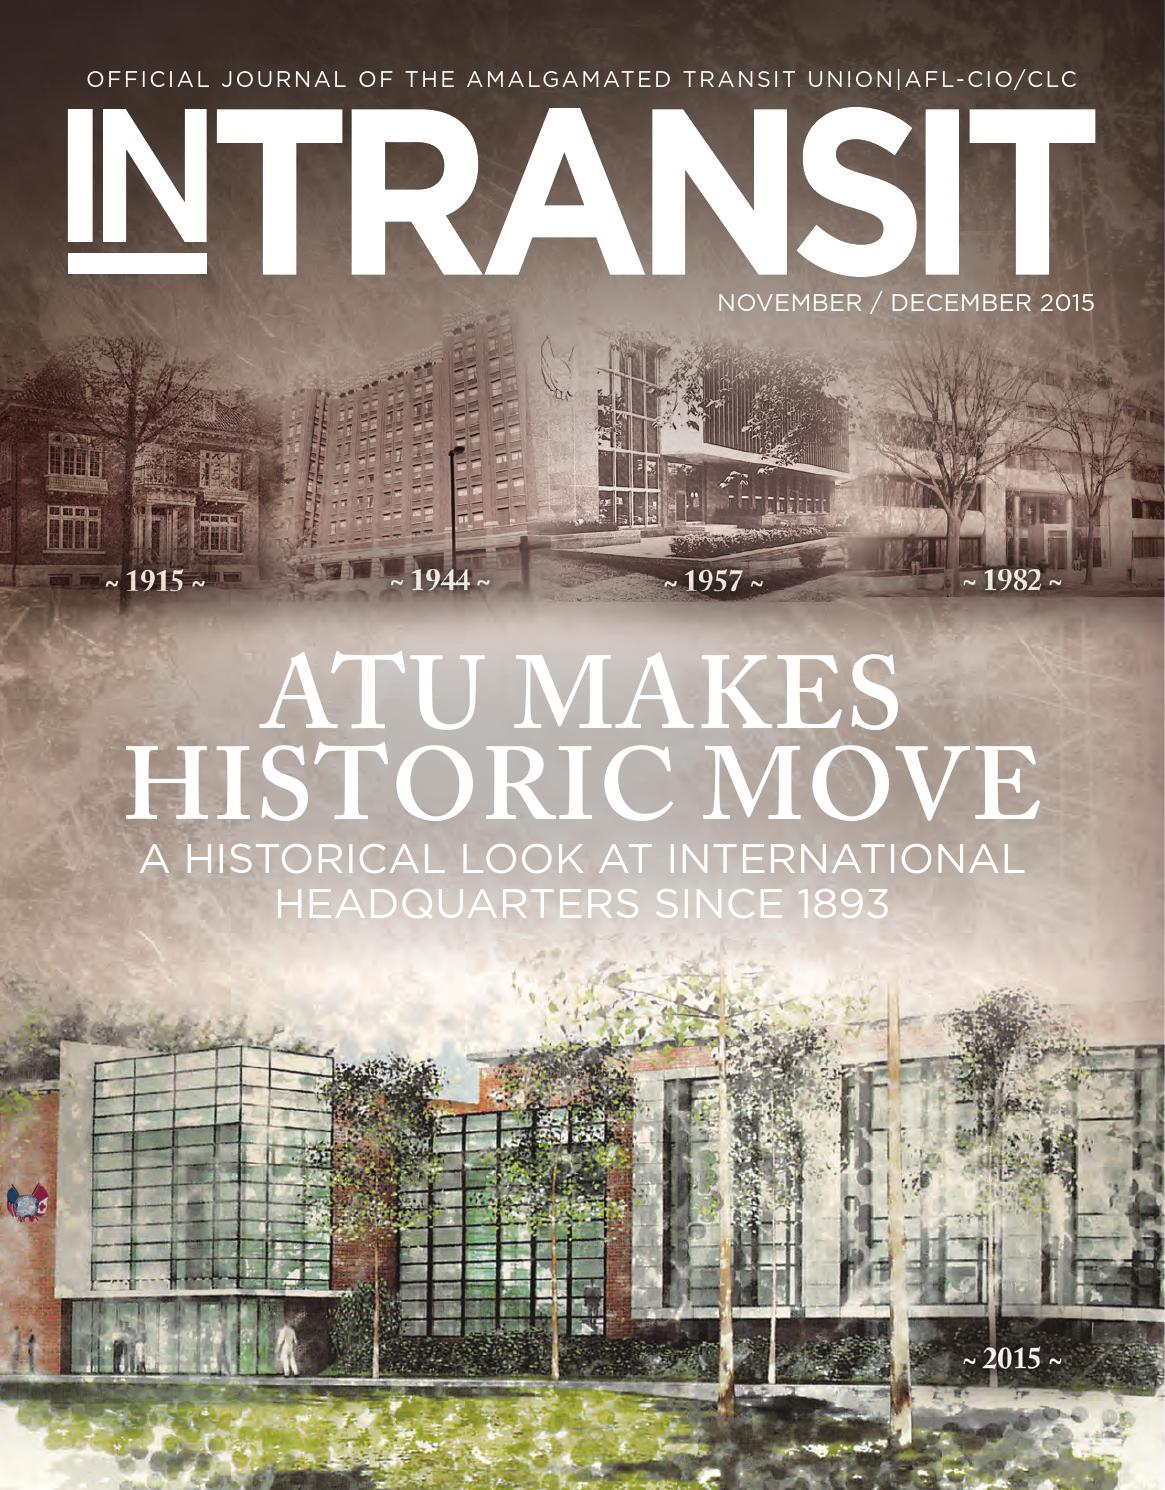 In Transit November December 2015 By Amalgamated Transit Union  # Muebles Medicos Maya